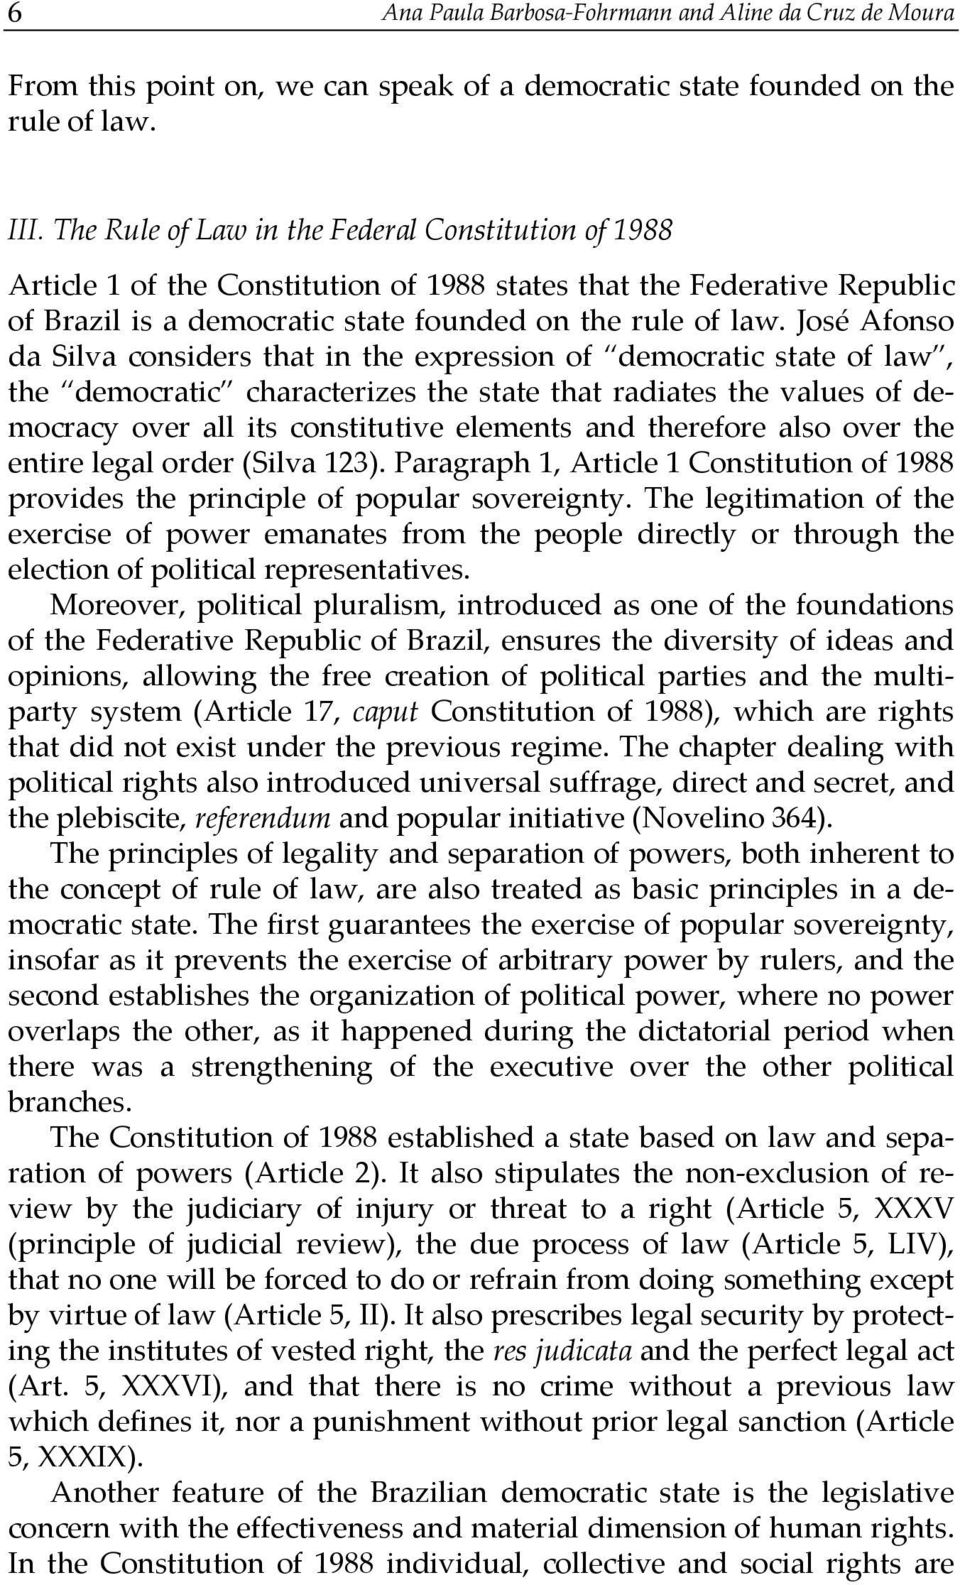 José Afonso da Silva considers that in the expression of democratic state of law, the democratic characterizes the state that radiates the values of democracy over all its constitutive elements and